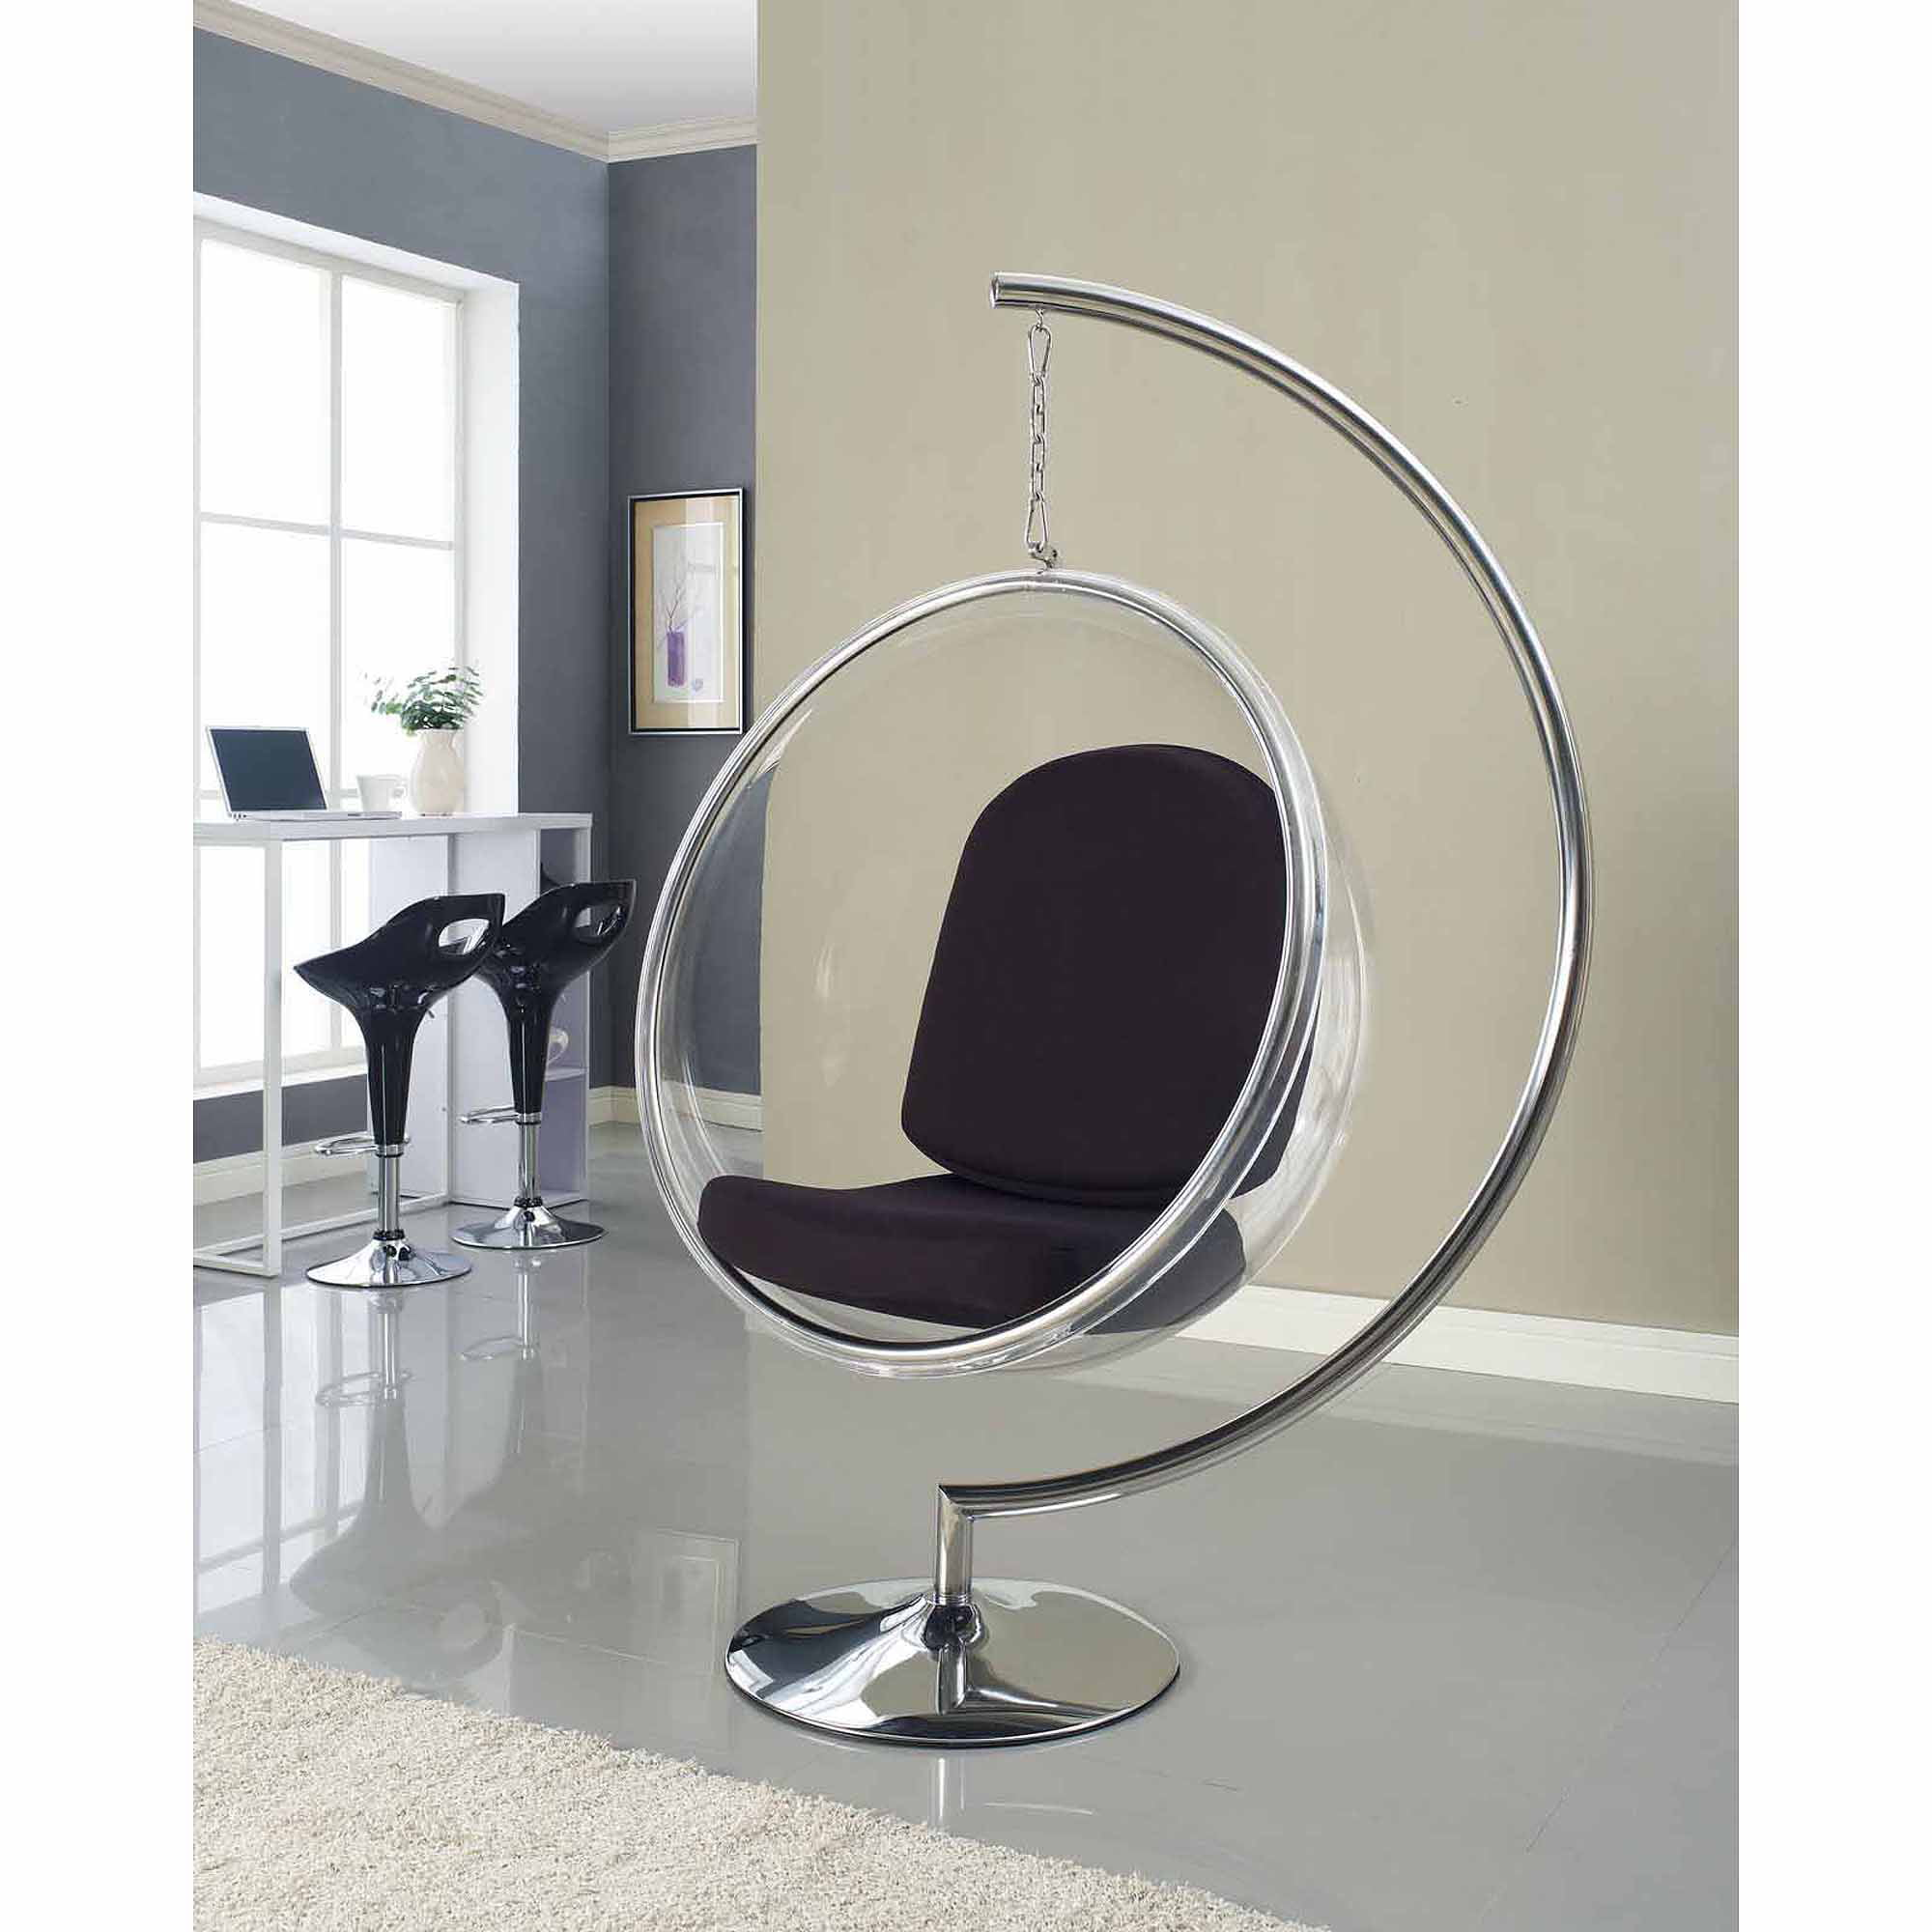 Modway Ring Lounge Acrylic Chair with Steel Rim, Multiple Colors -  Walmart.com